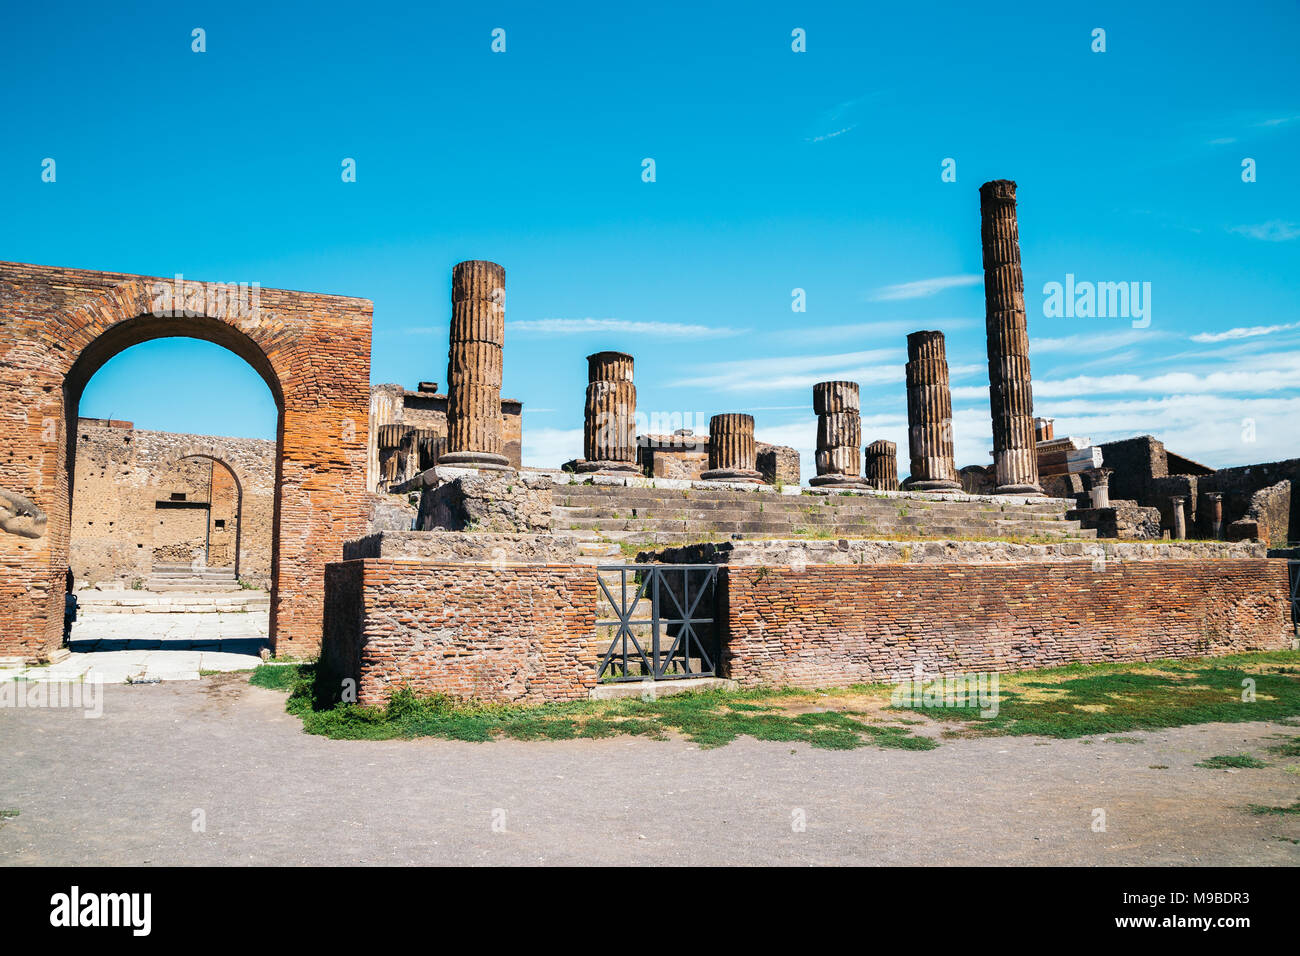 Ruins of Pompeii. Pompeii is an ancient Roman city died from the eruption of Mount Vesuvius in 79 AD - Stock Image